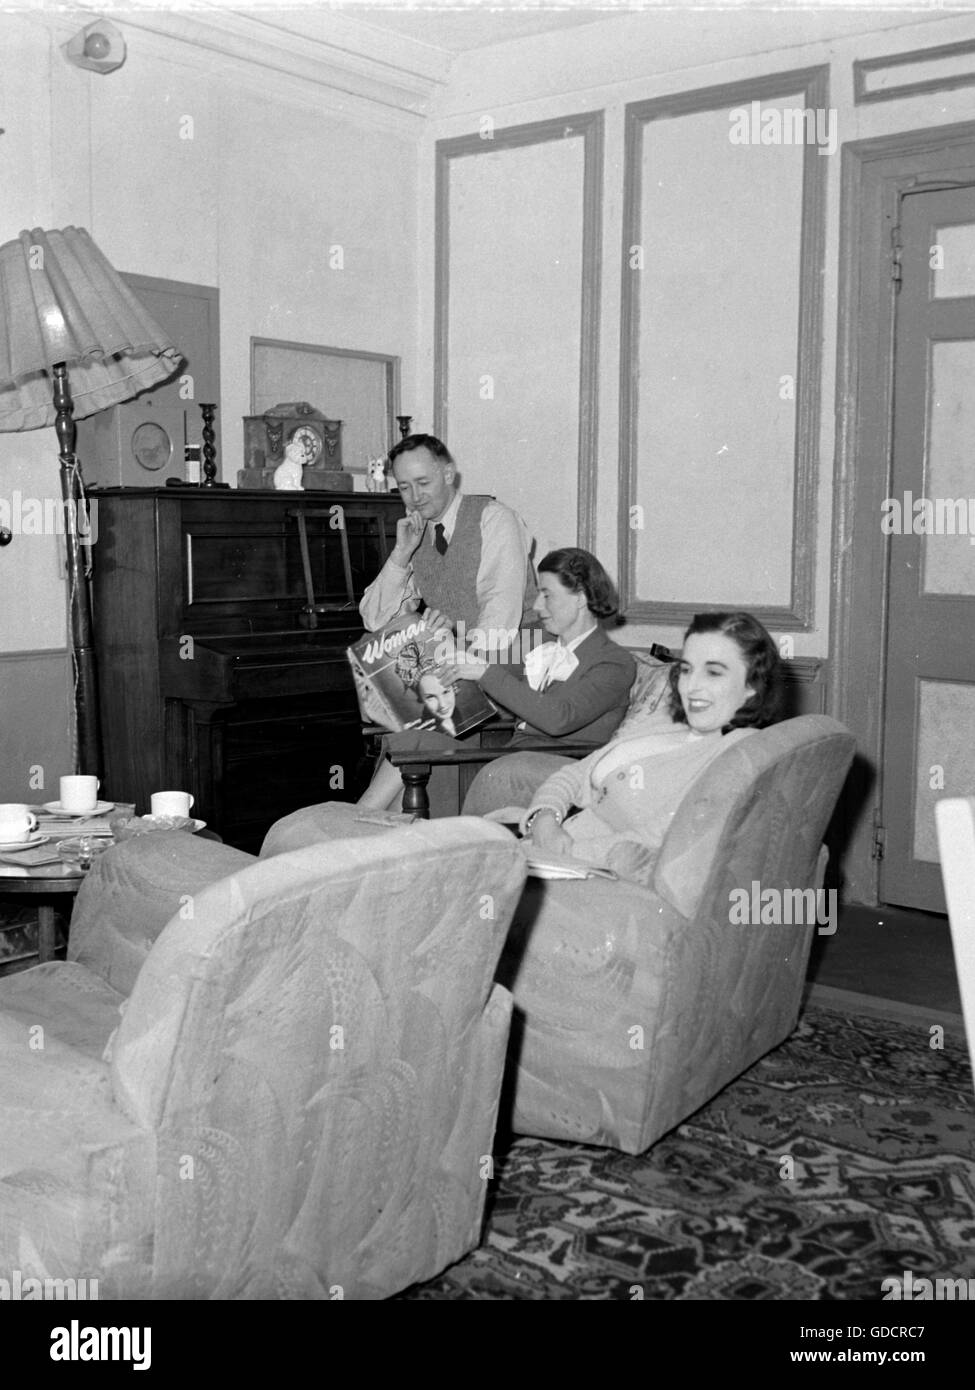 A typically furnished family living room c1950. Mother is reading 'Woman Magazine'. Photograph by Tony Henshaw - Stock Image